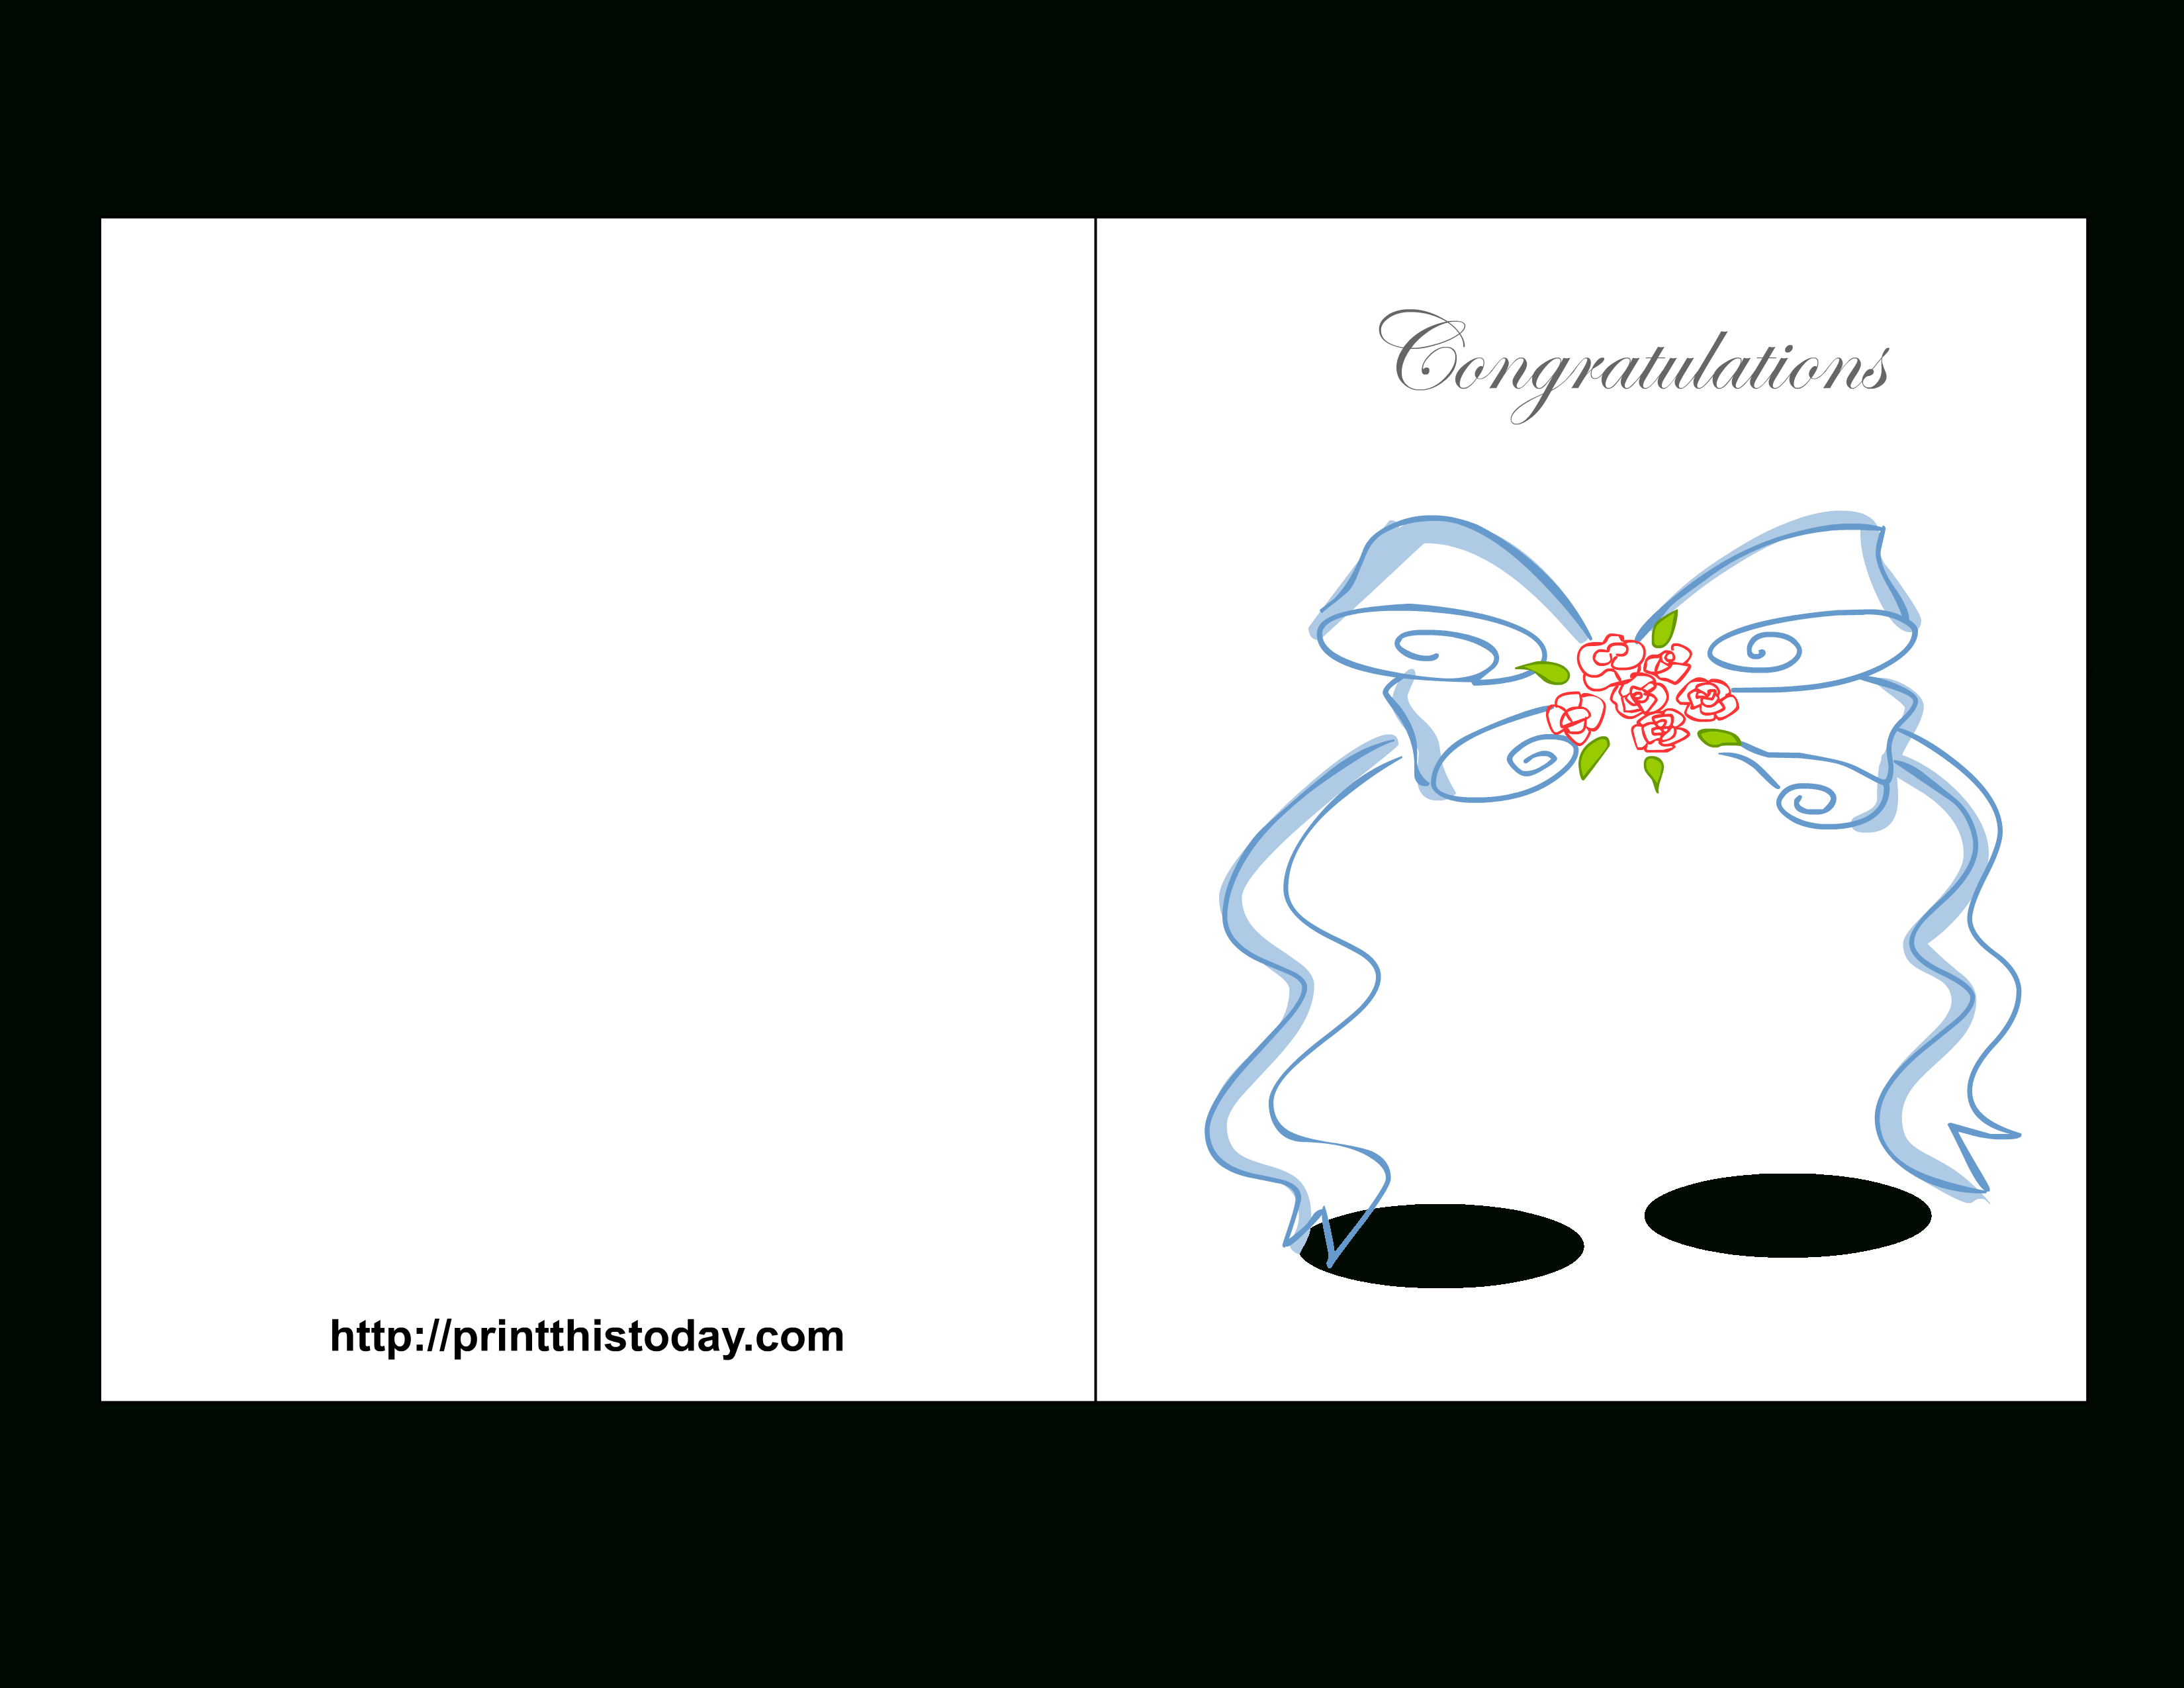 Free Printable Wedding Congratulations Cards - Wedding Wish Cards Printable Free